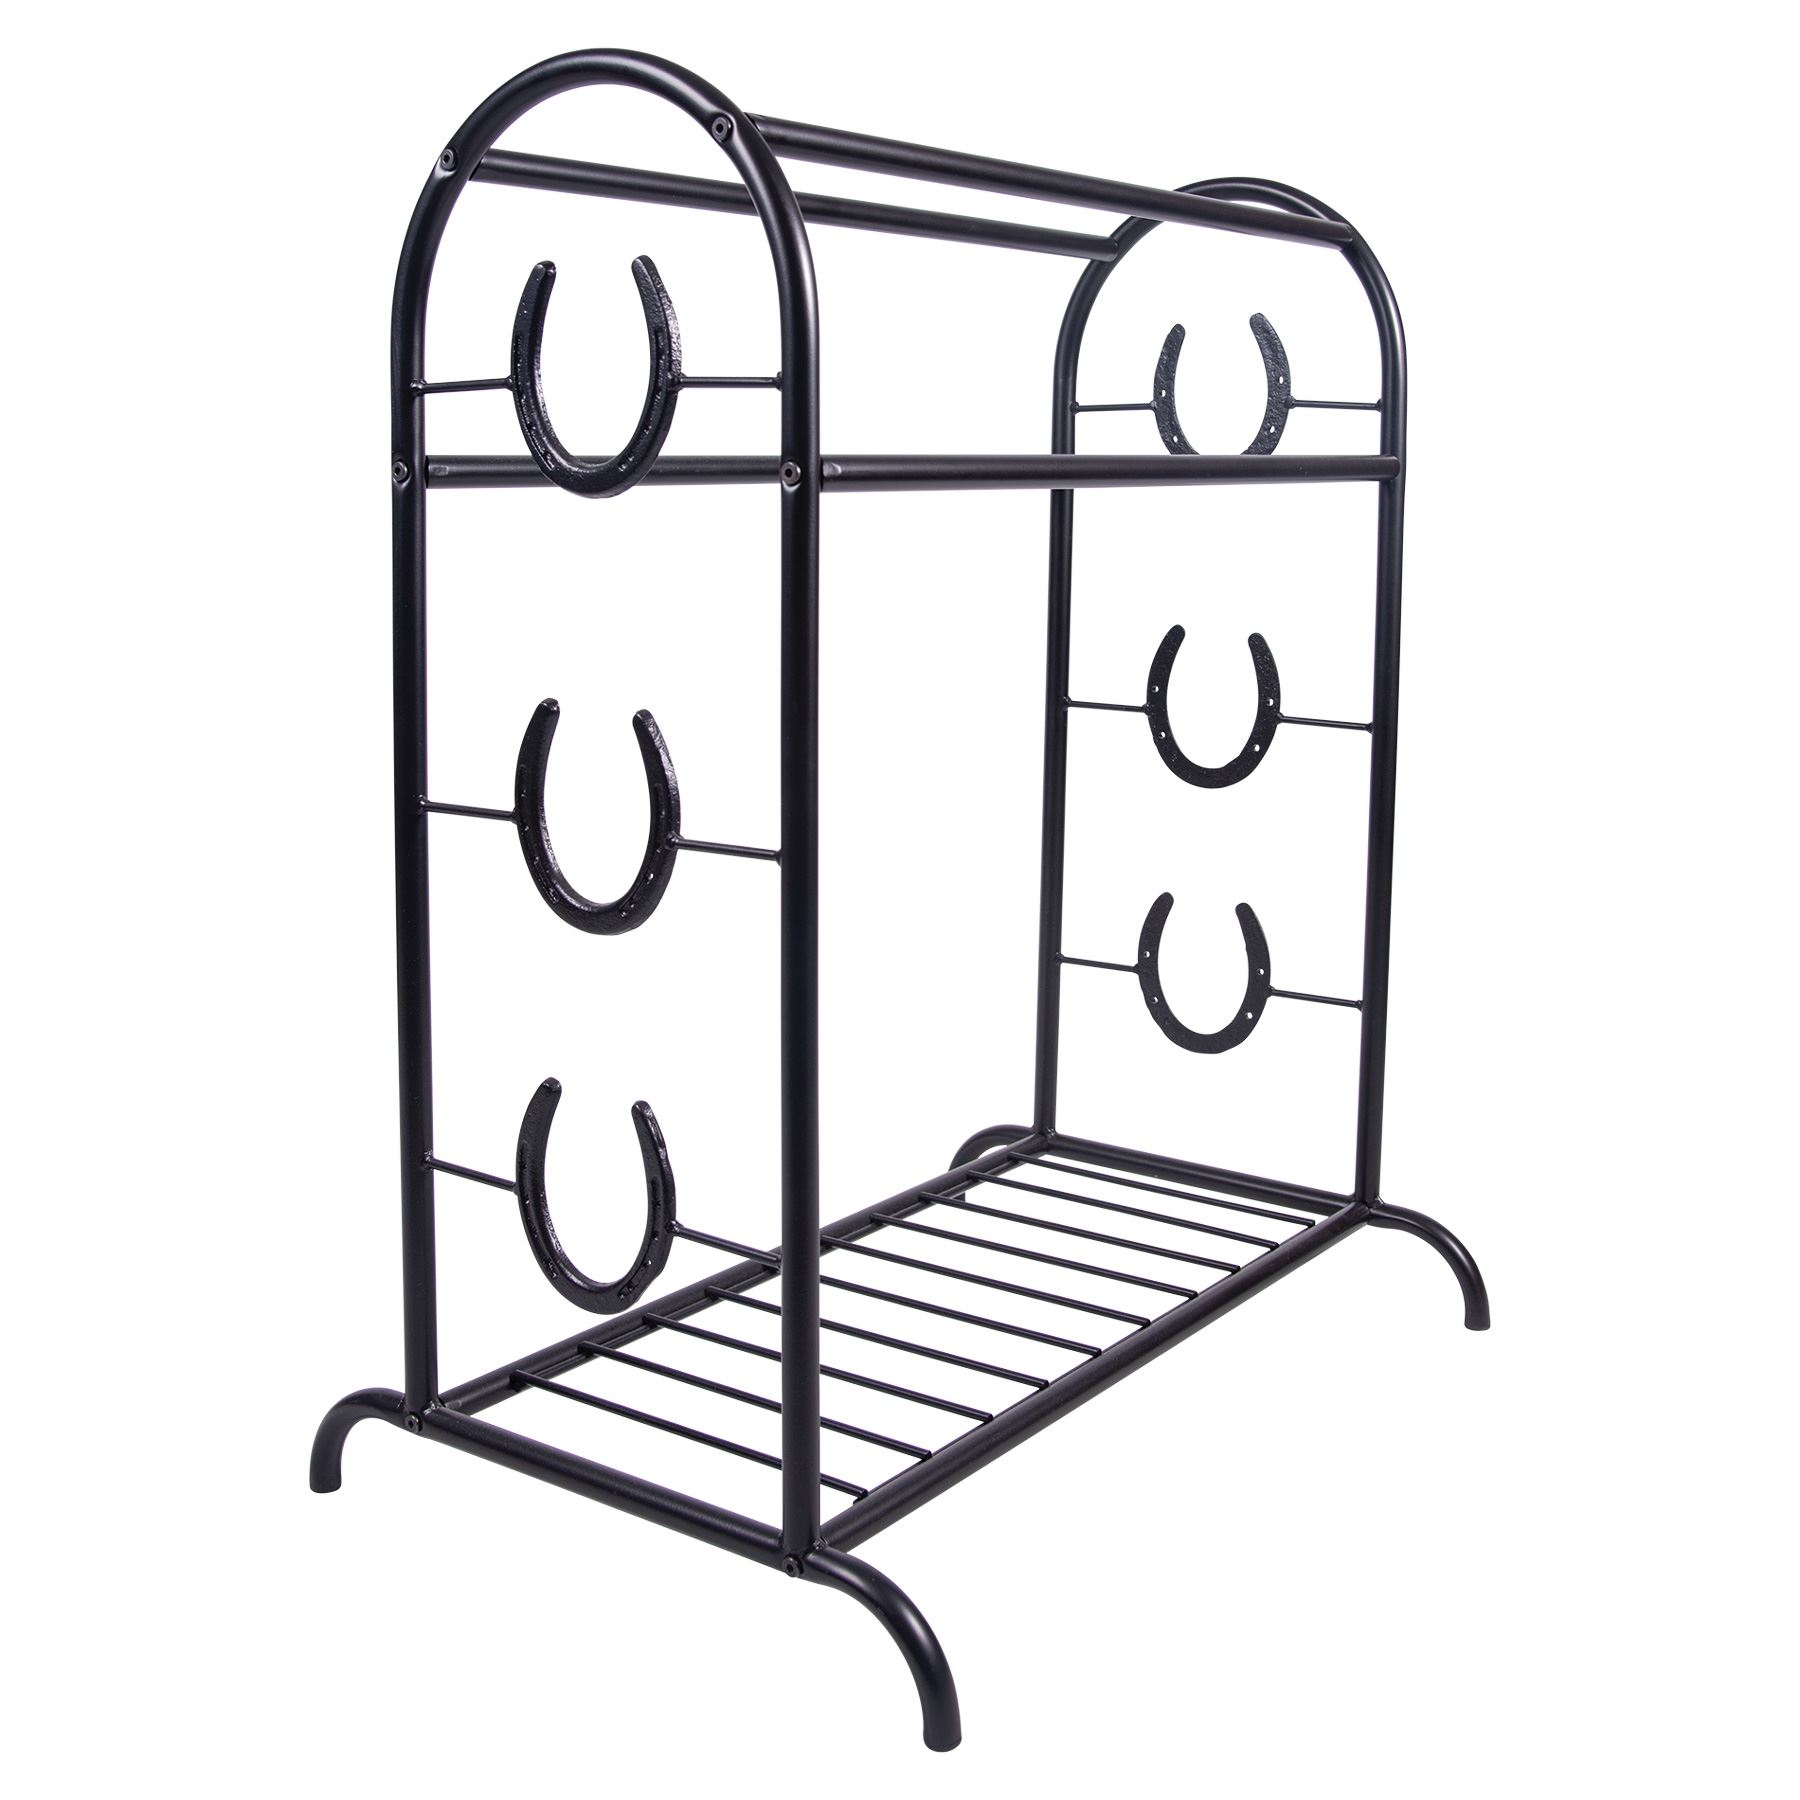 Easy-Up® Horseshoe Trophy Saddle Stand in Saddle Racks